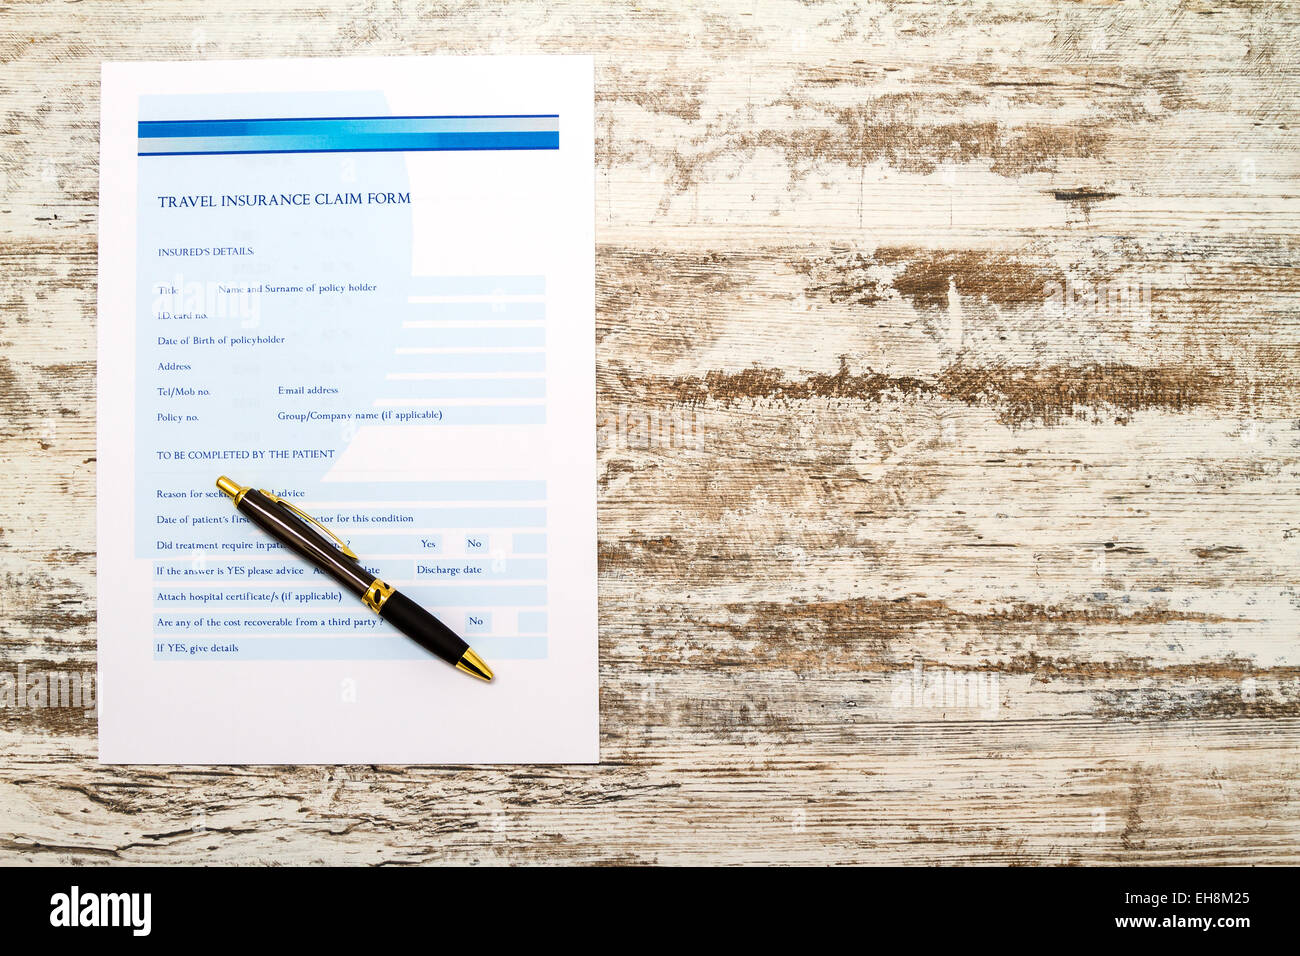 Travel insurance application form background - Stock Image